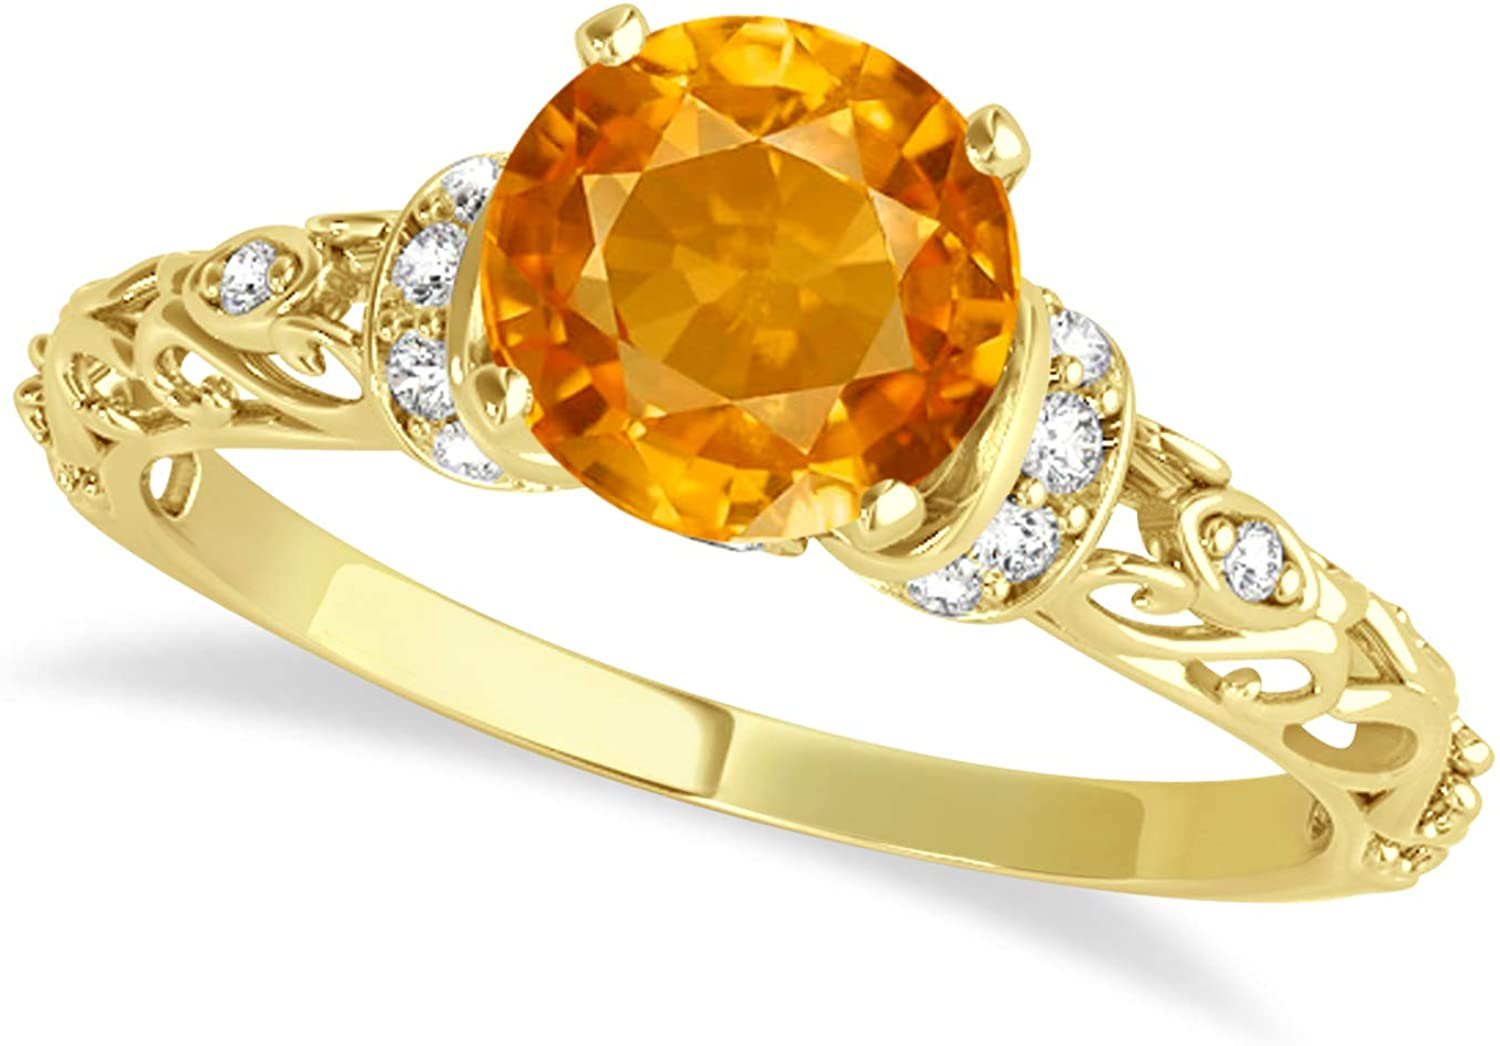 (1.62ct) 14k Yellow Gold Citrine and Diamond Antique-Style Engagement Ring